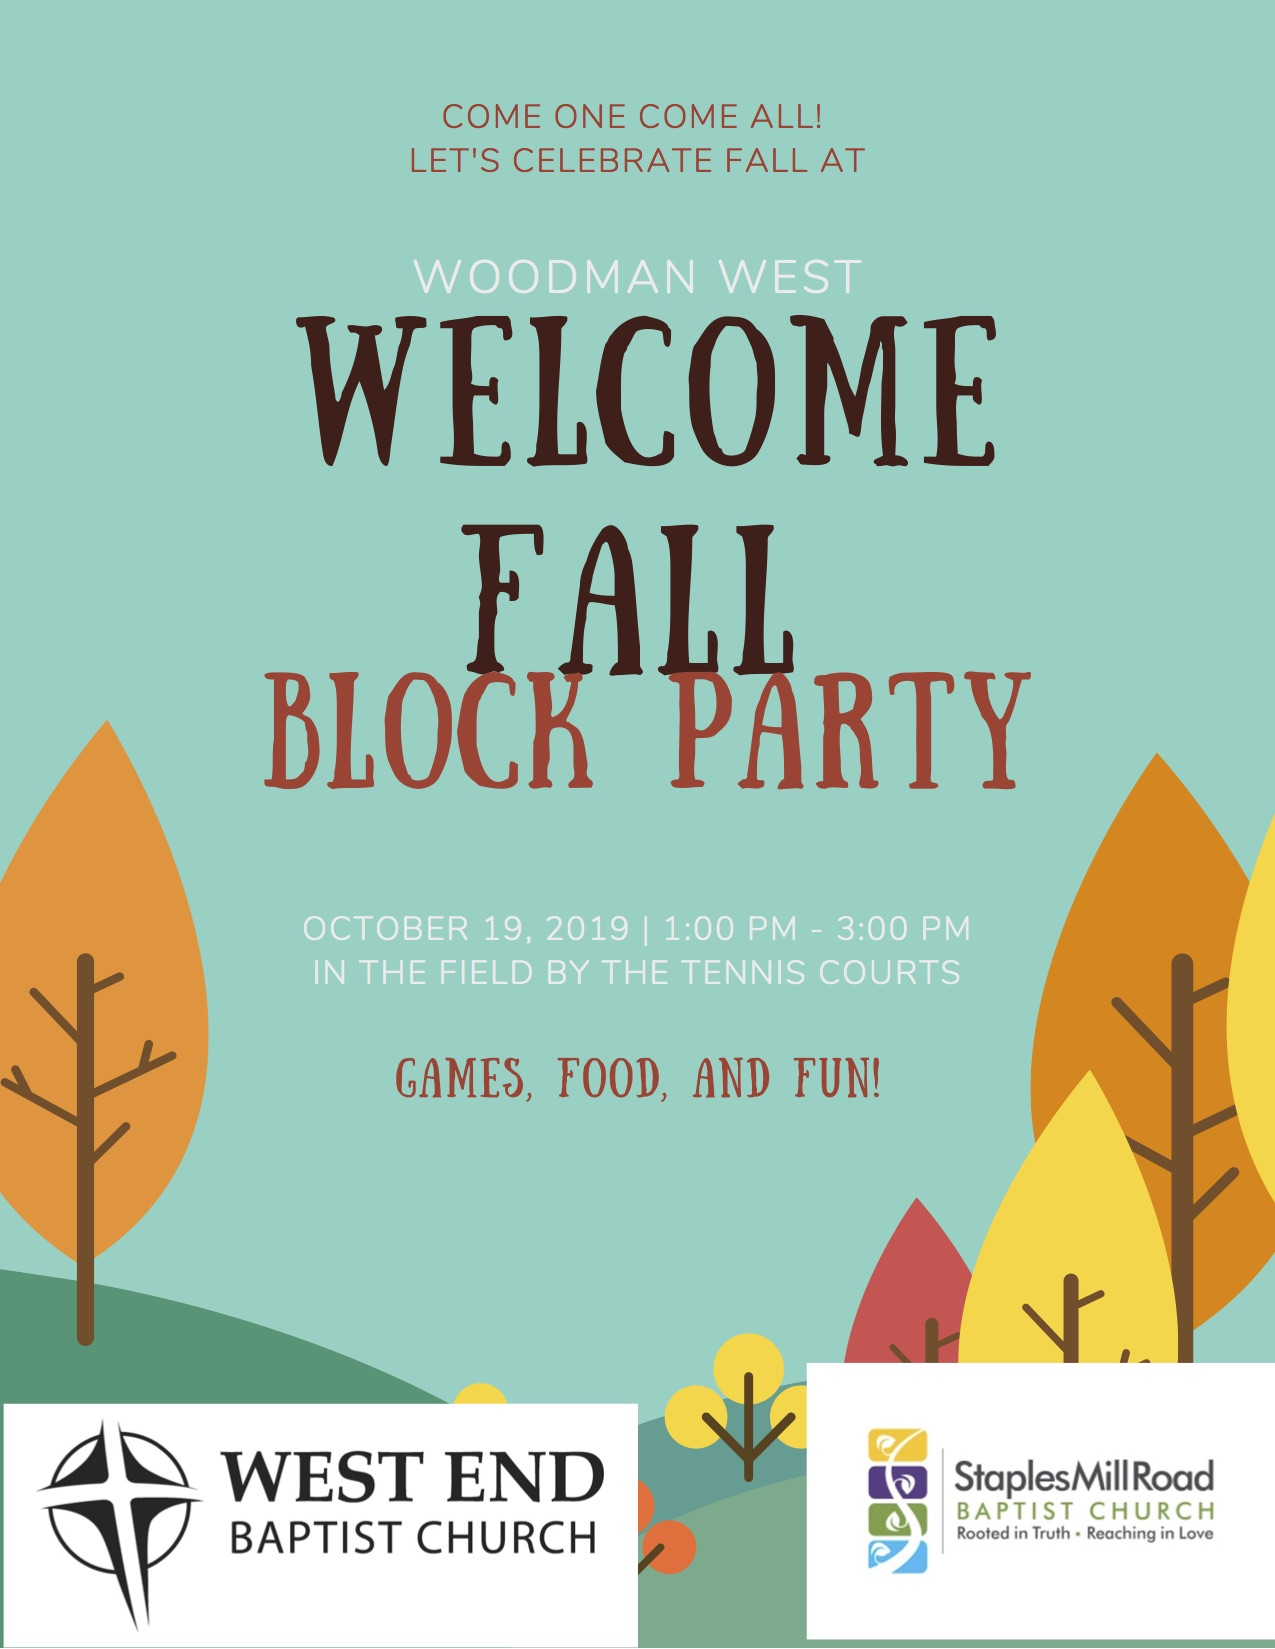 Fall Block Party at Woodman West - Join us and Staples Mill Baptist on October 19th from 1-3pm for games, food, and fun at the Woodman West Community! This is a great opportunity to meet our neighbors and fellowship.